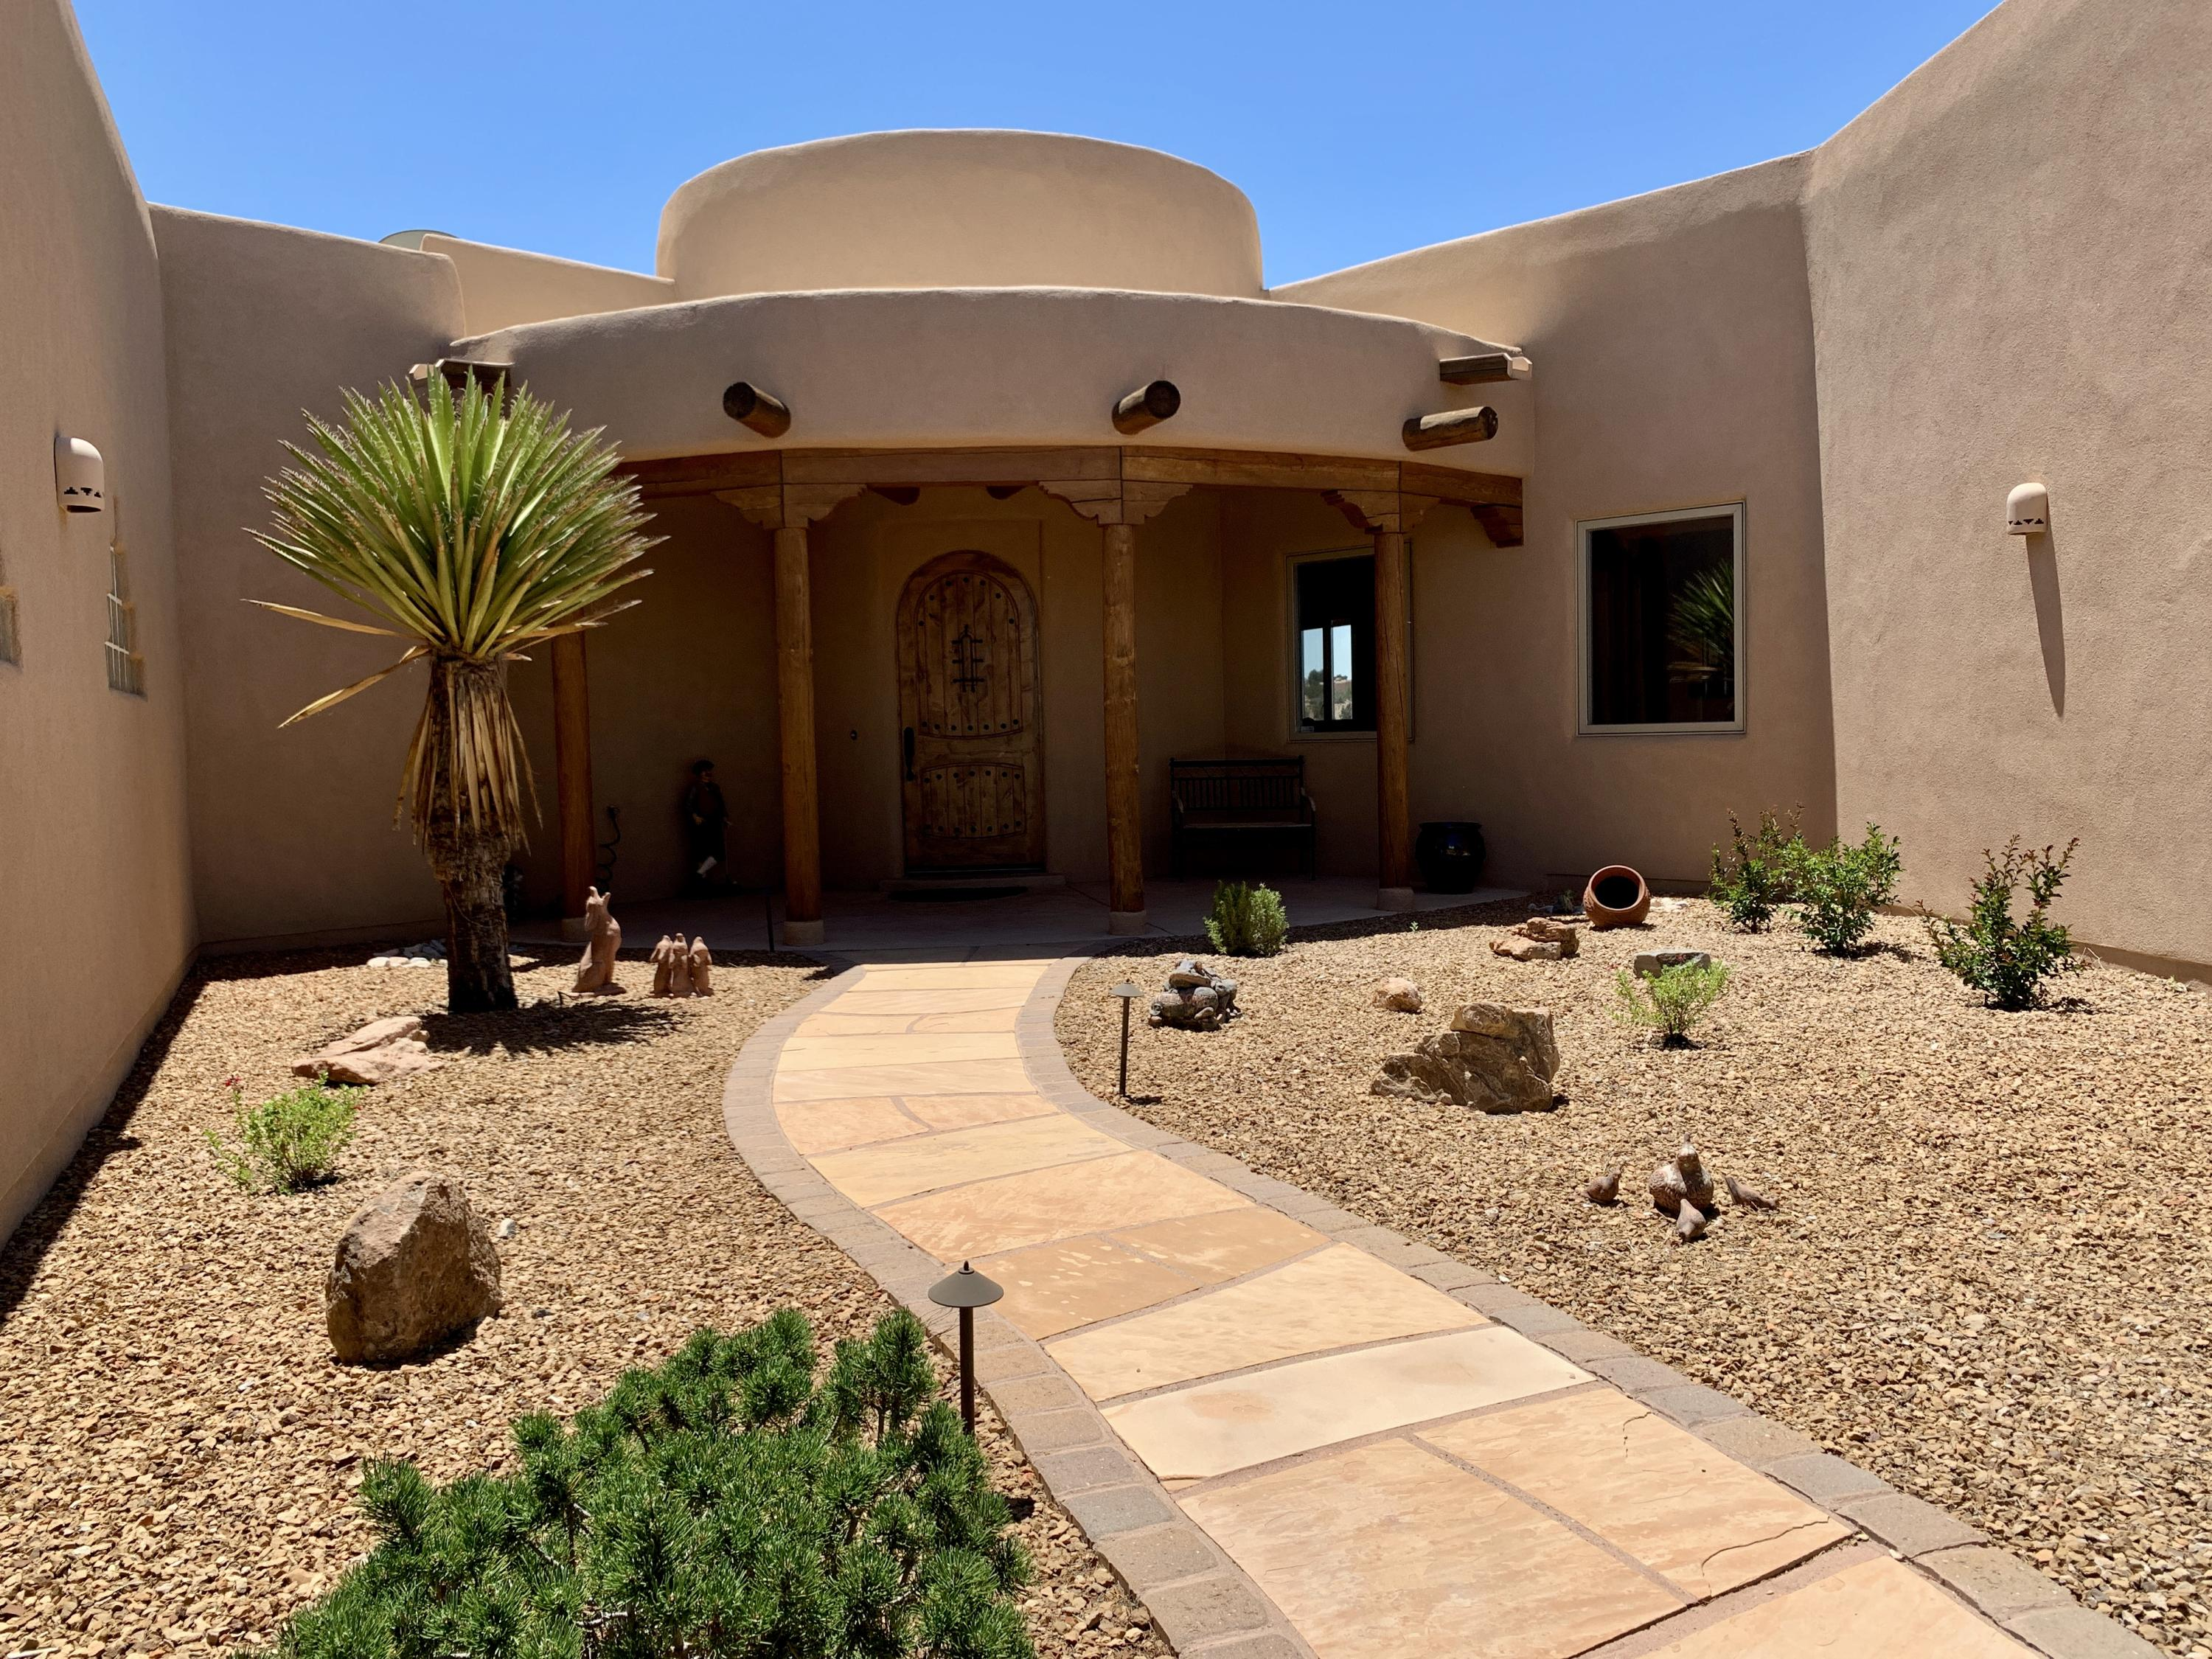 Placitas, just minutes from ABQ and Santa Fe this energy efficient custom pueblo style Kayeman Custom Home is certified at the BGNM Gold level with solar PV and solar thermal installed. Sweeping views atop a ridge in the Anasazi Meadows Subdivision this well maintained home has high end appliances, diamond plaster accents flowing thru a very clean floor plan and outdoor living area. Vigas and latillas in the entry, living and dining areas along with a keva fireplace make a very comfortable and warm entertaining space. Large Master with his/hers closets and stone snail shower. Large 4th Bedroom can be a library or craft room or multi generational room with bed and sitting area. There is attention to detail throughout. Oversized 3 car garage with storage. See Virtual Tour